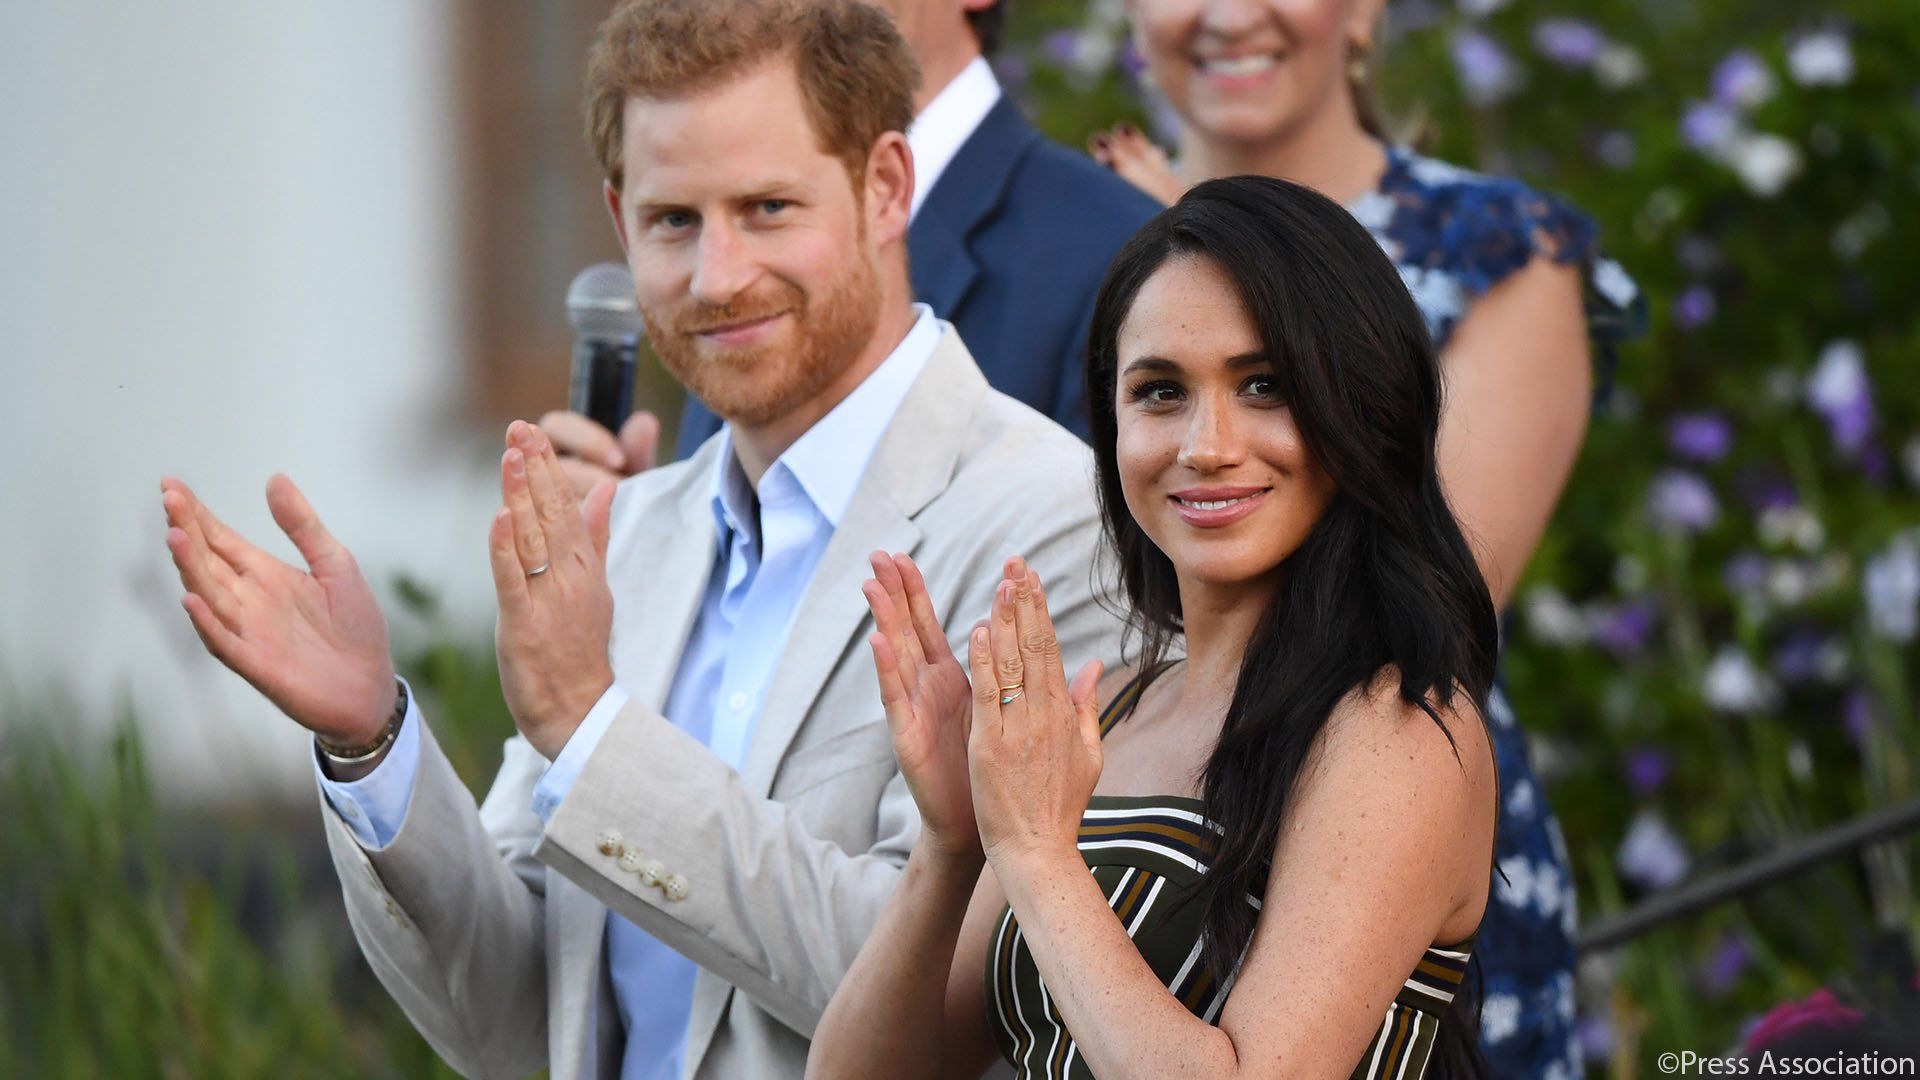 Prince Harry & Meghan are No Longer Working Members of The Royal Family